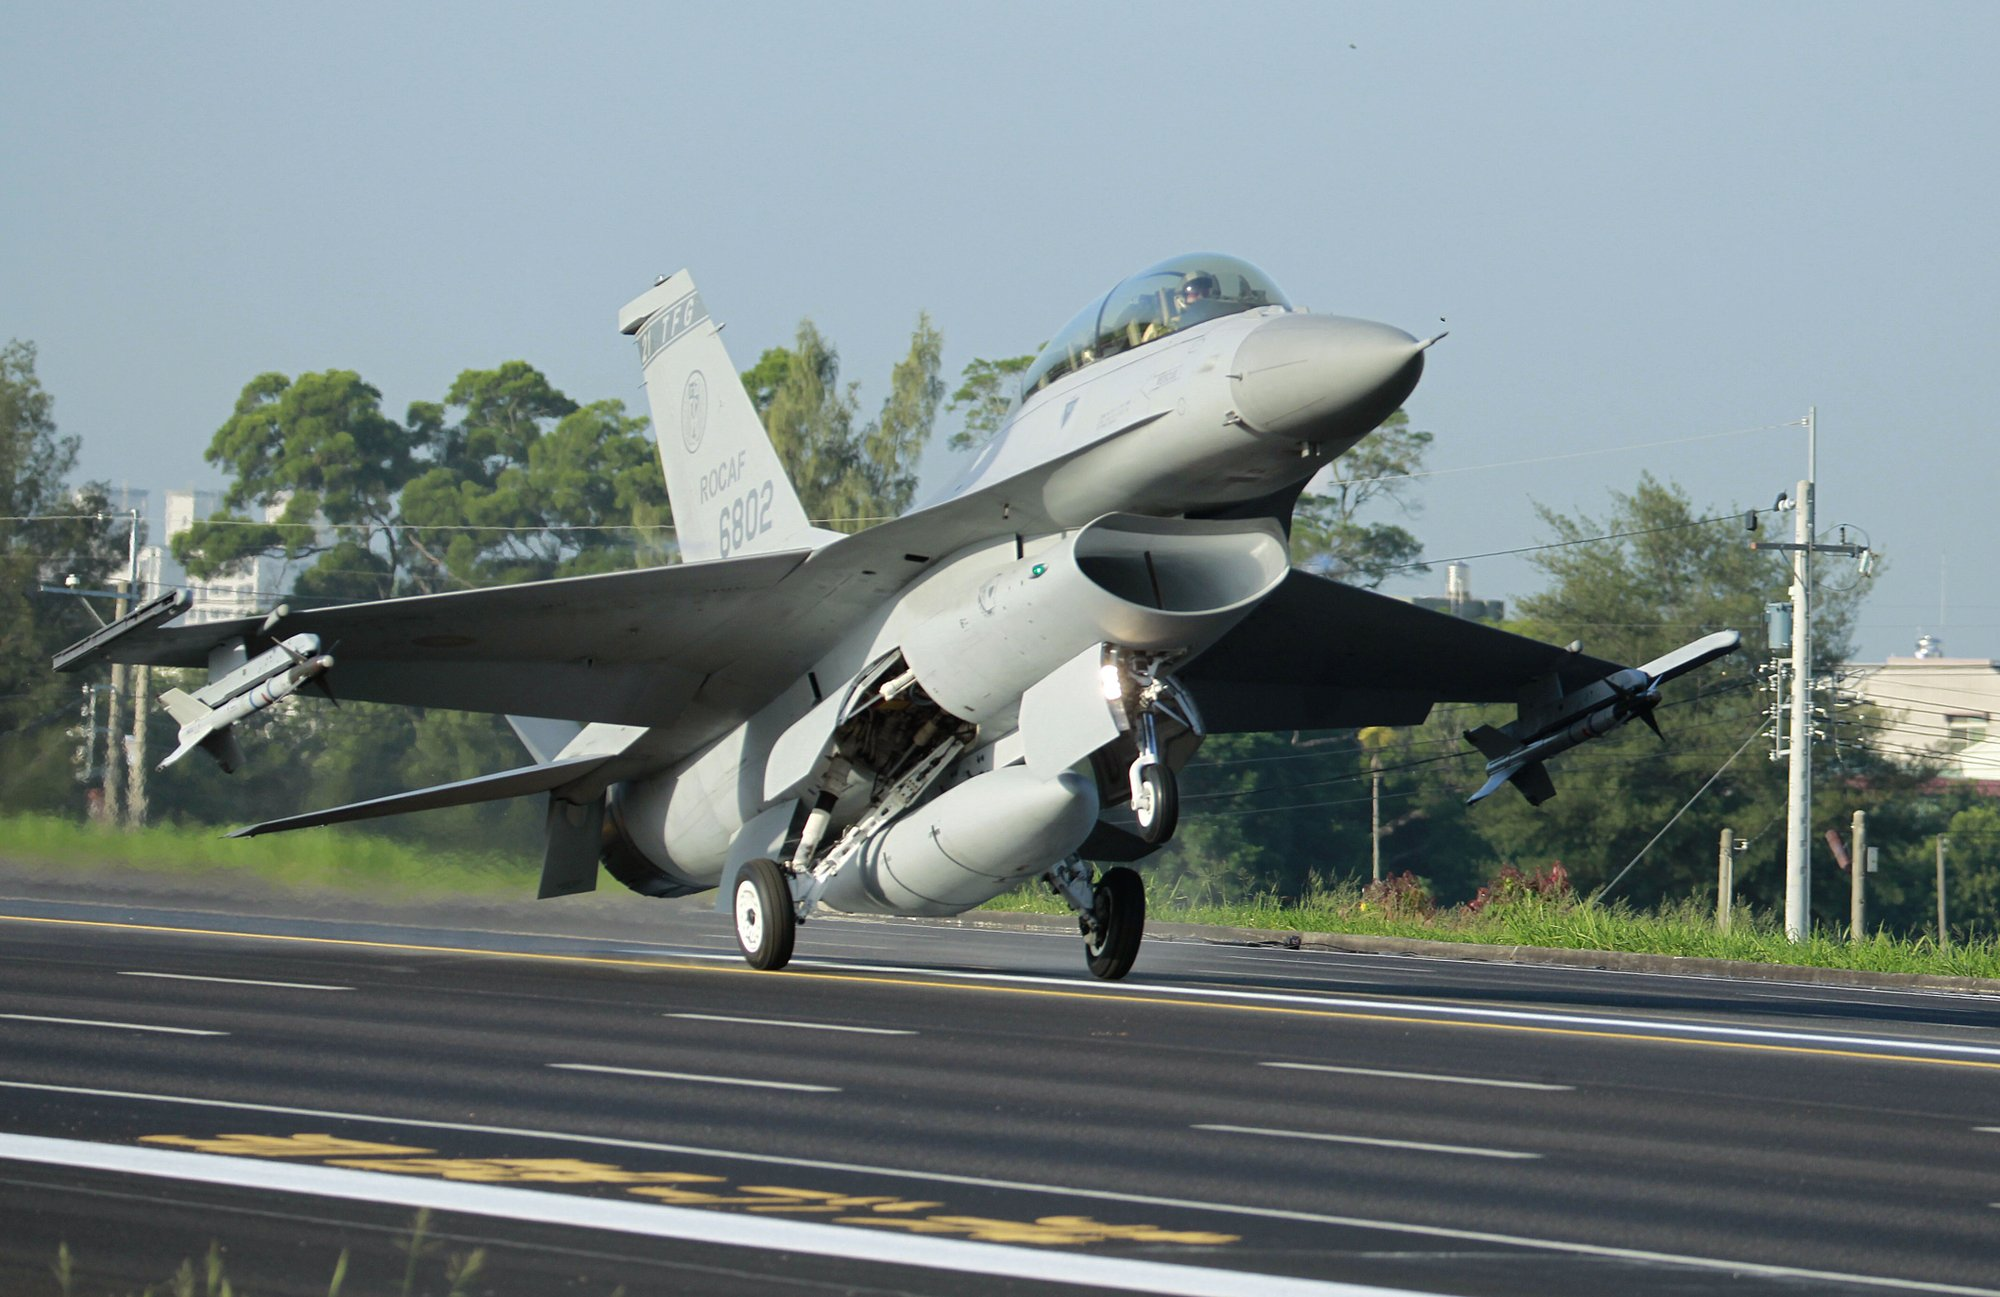 Taiwan's Tsai expresses thanks over approval of F-16V sale